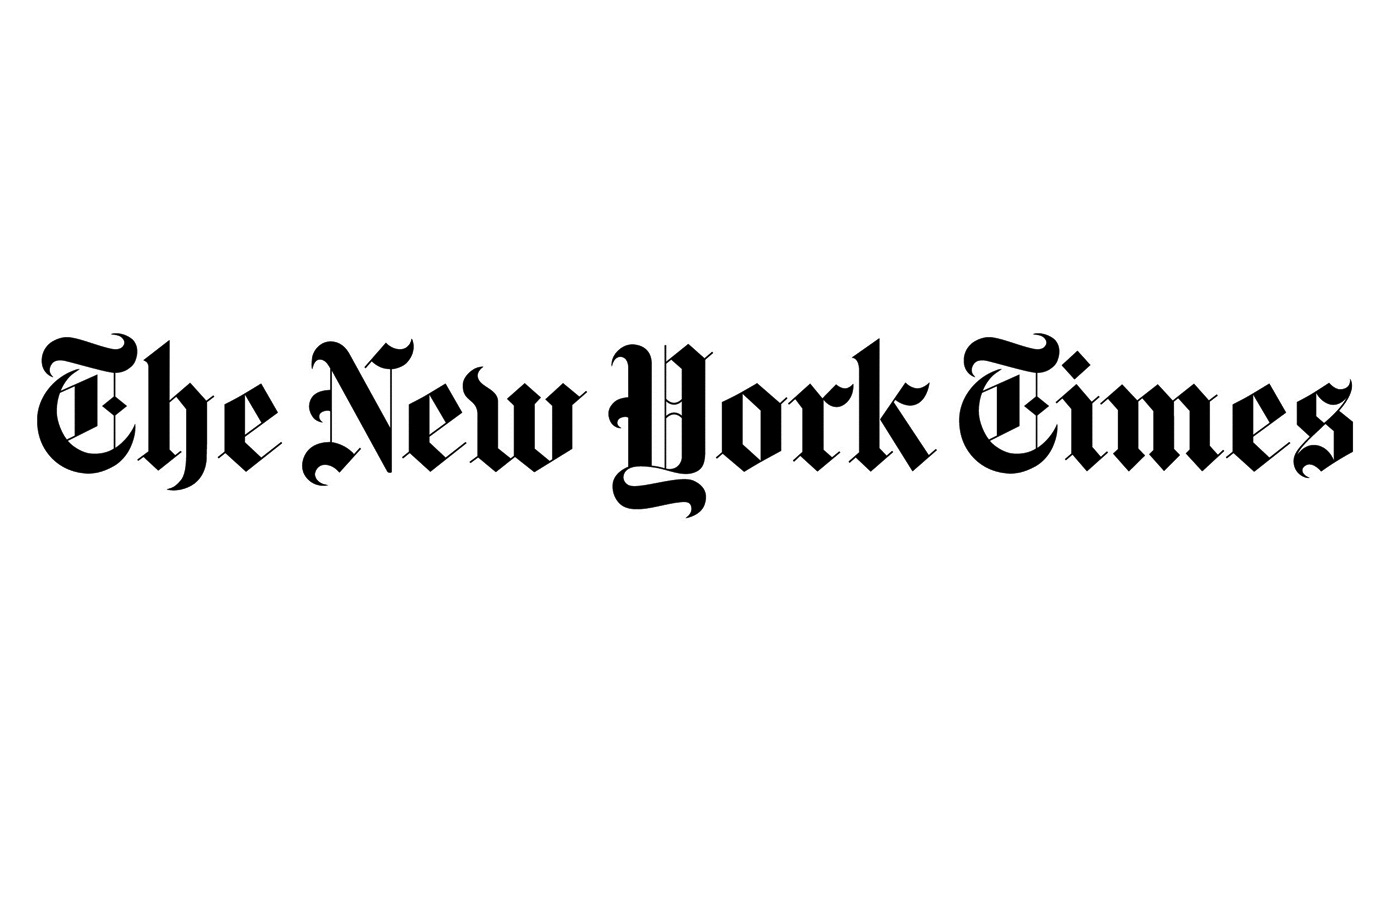 talking back to the new york times adhd roller coaster gina new york times logo 8